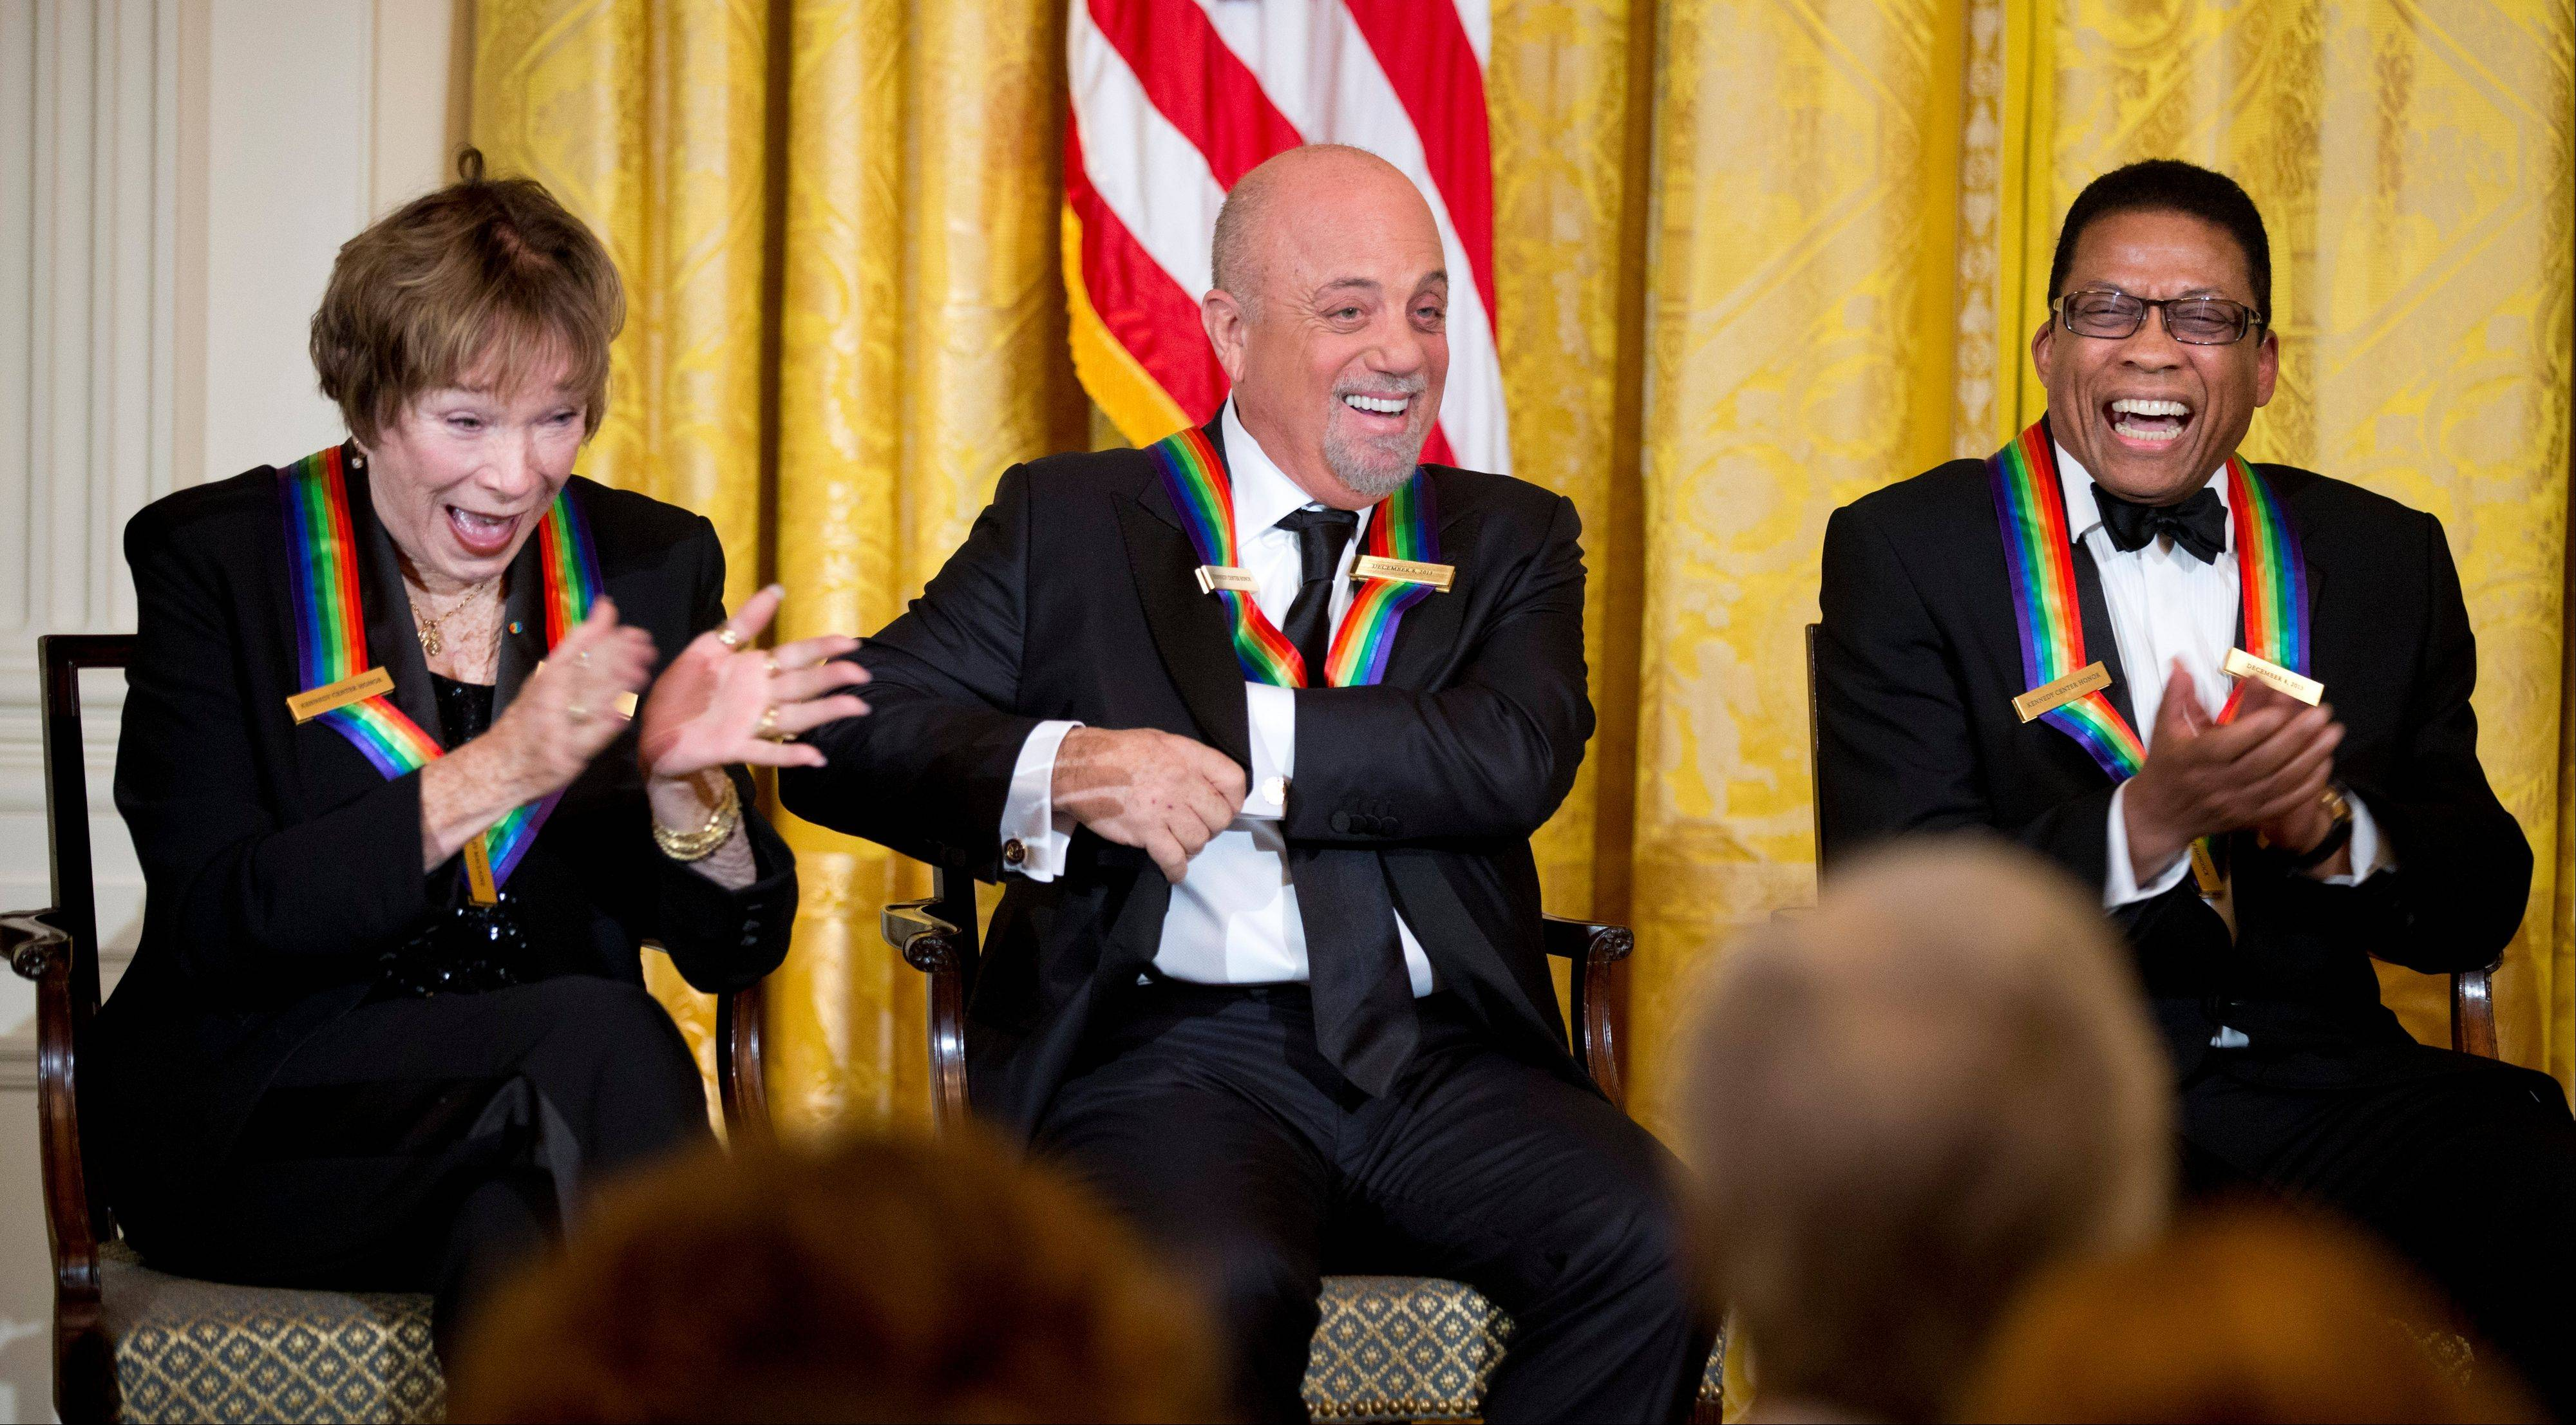 Recipients of the 2013 Kennedy Center Honors, from left; Shirley MacLaine, Billy Joel and Herbie Hancock, laugh during a reception Sunday honoring the 2013 Kennedy Center Honors recipients in the East Room of the White House in Washington.